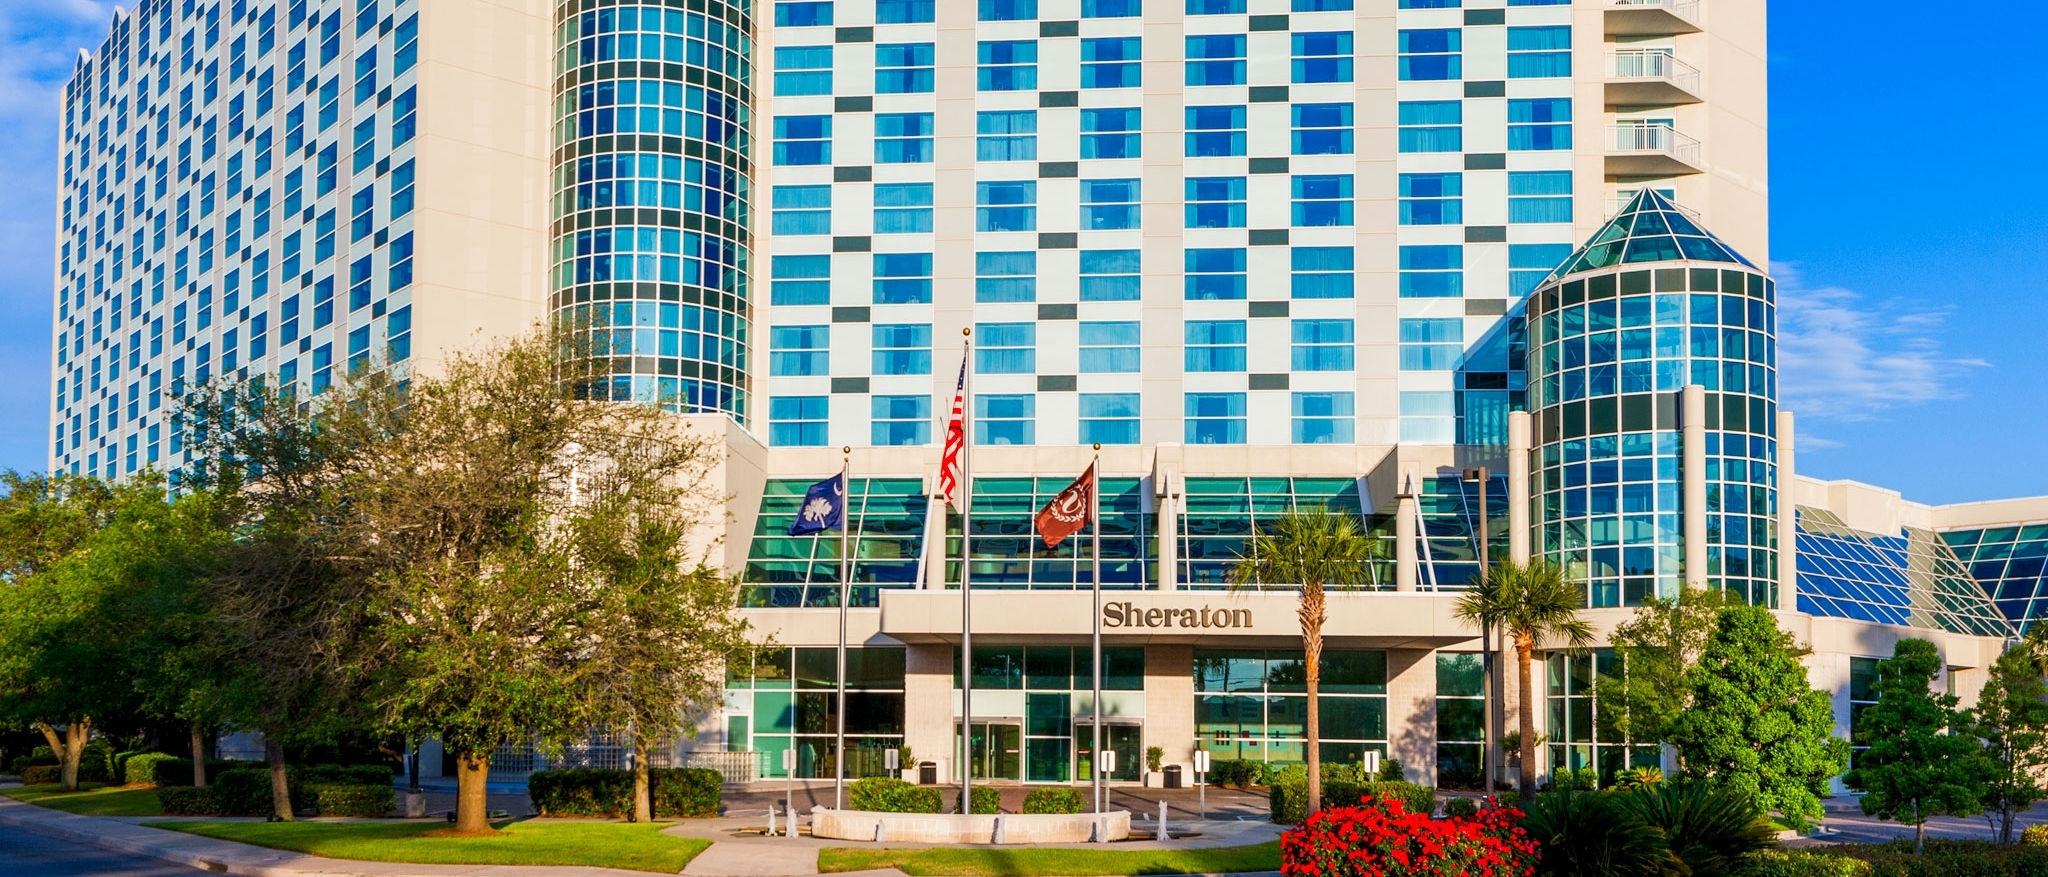 Sheraton Myrtle Beach Convention Center Hotel Exterior